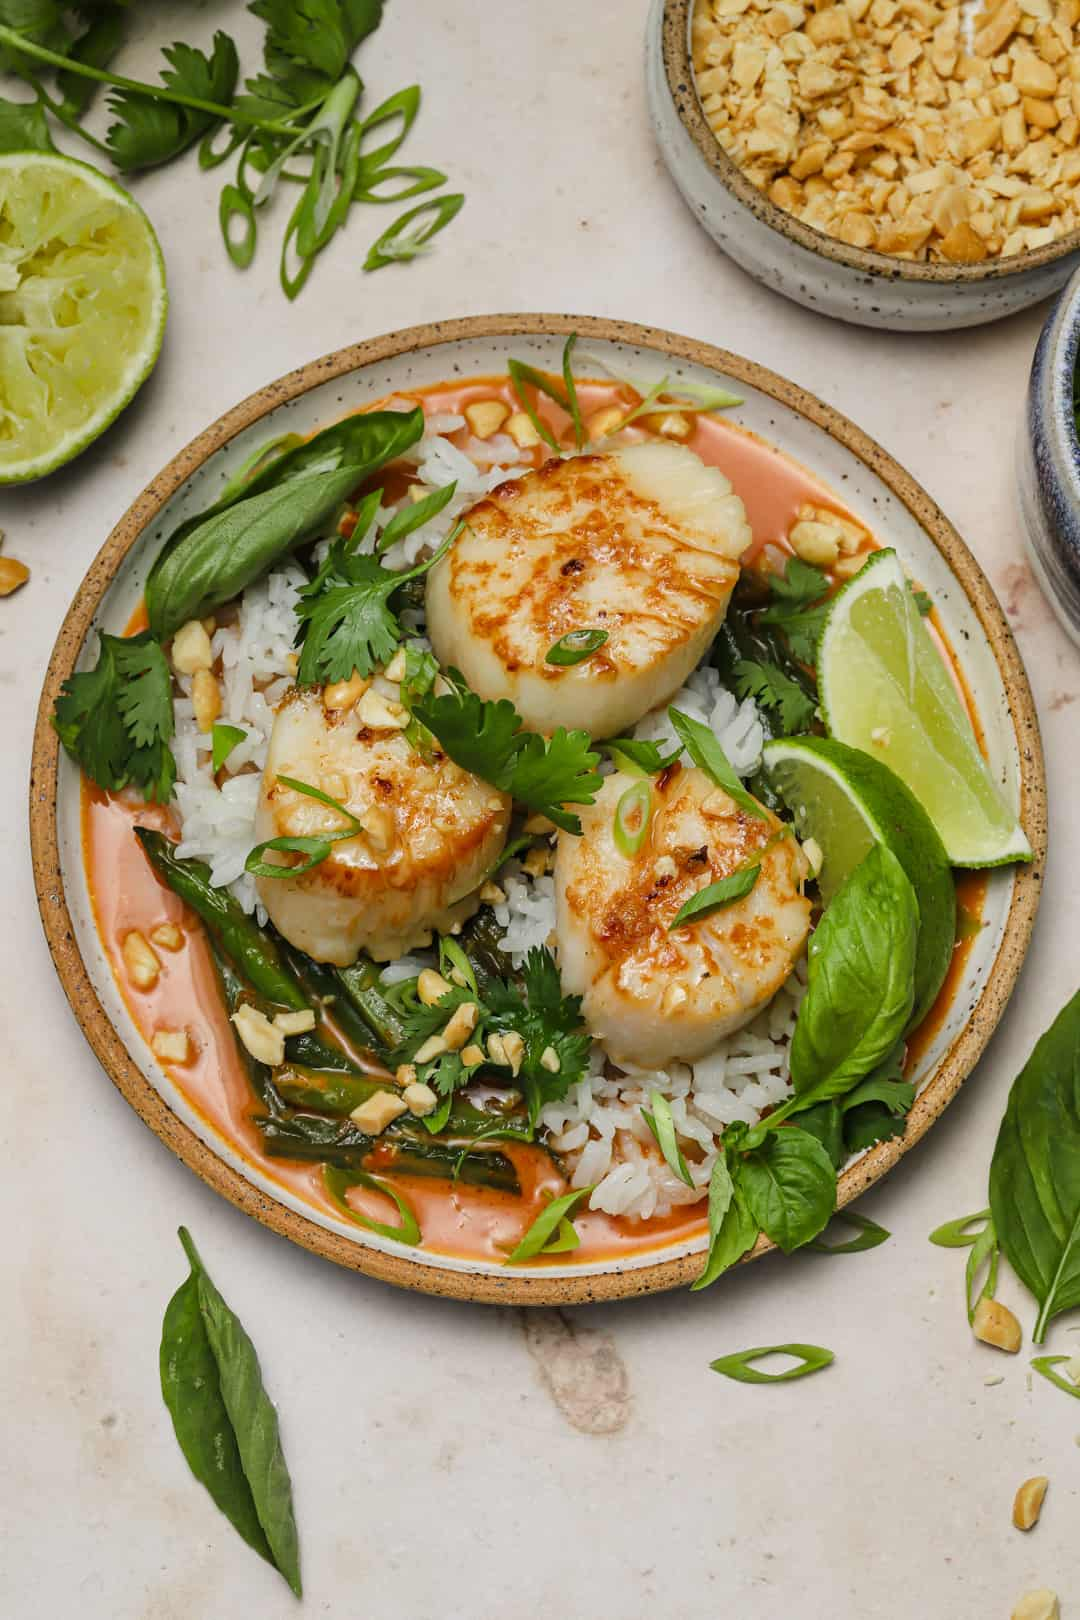 Thai scallop curry with rice and string beans on a plate with peanuts